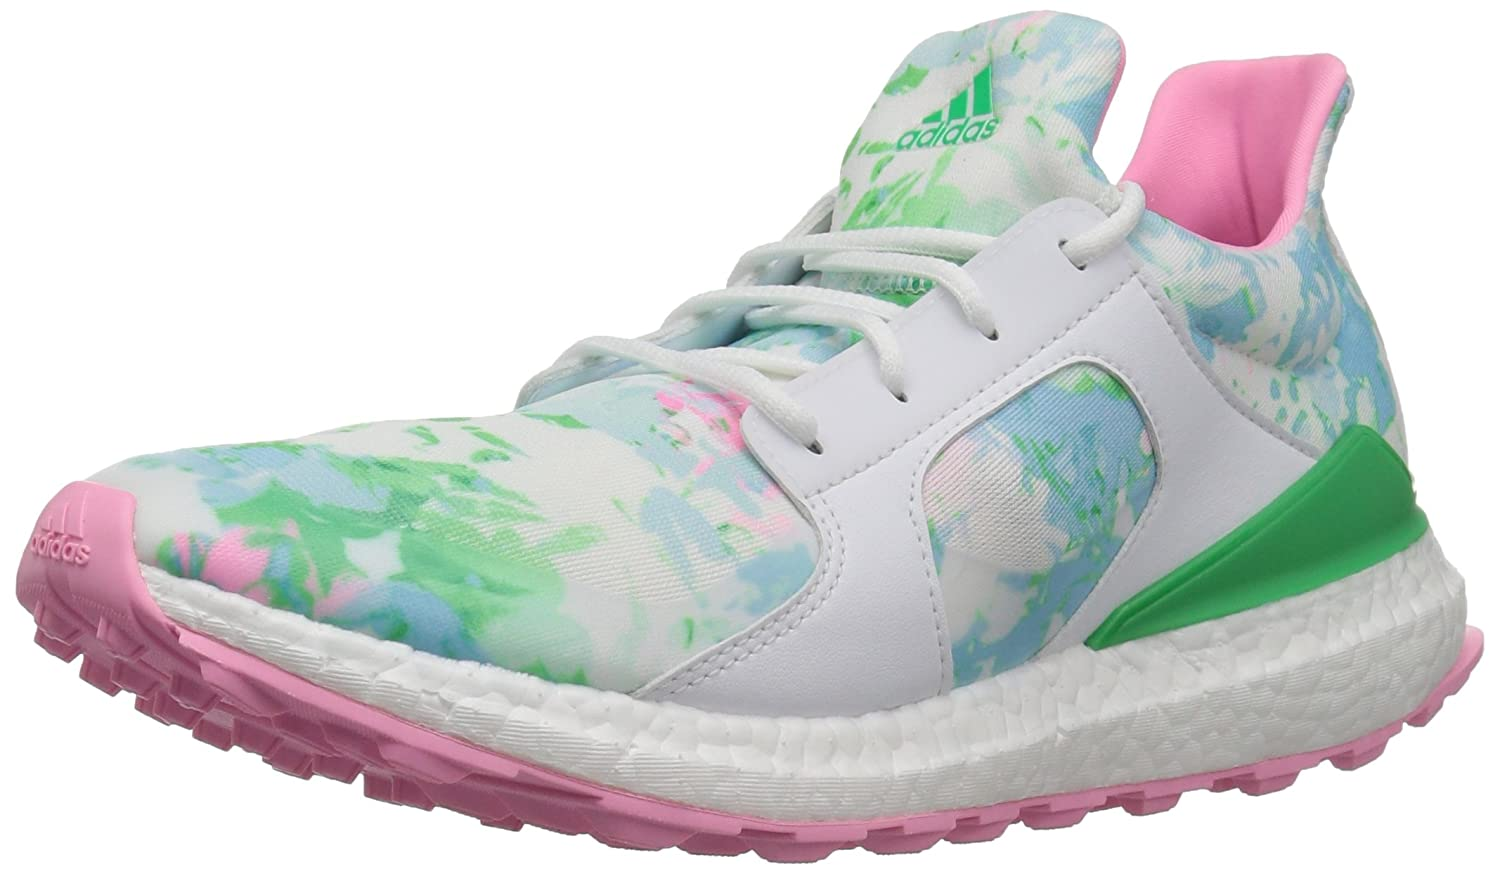 Blanc Flash Lime rose adidasw climacross Boost Enebleu-W - W Climacross Boost Enebleu - Femme - Bleu Femme 38.5 EU